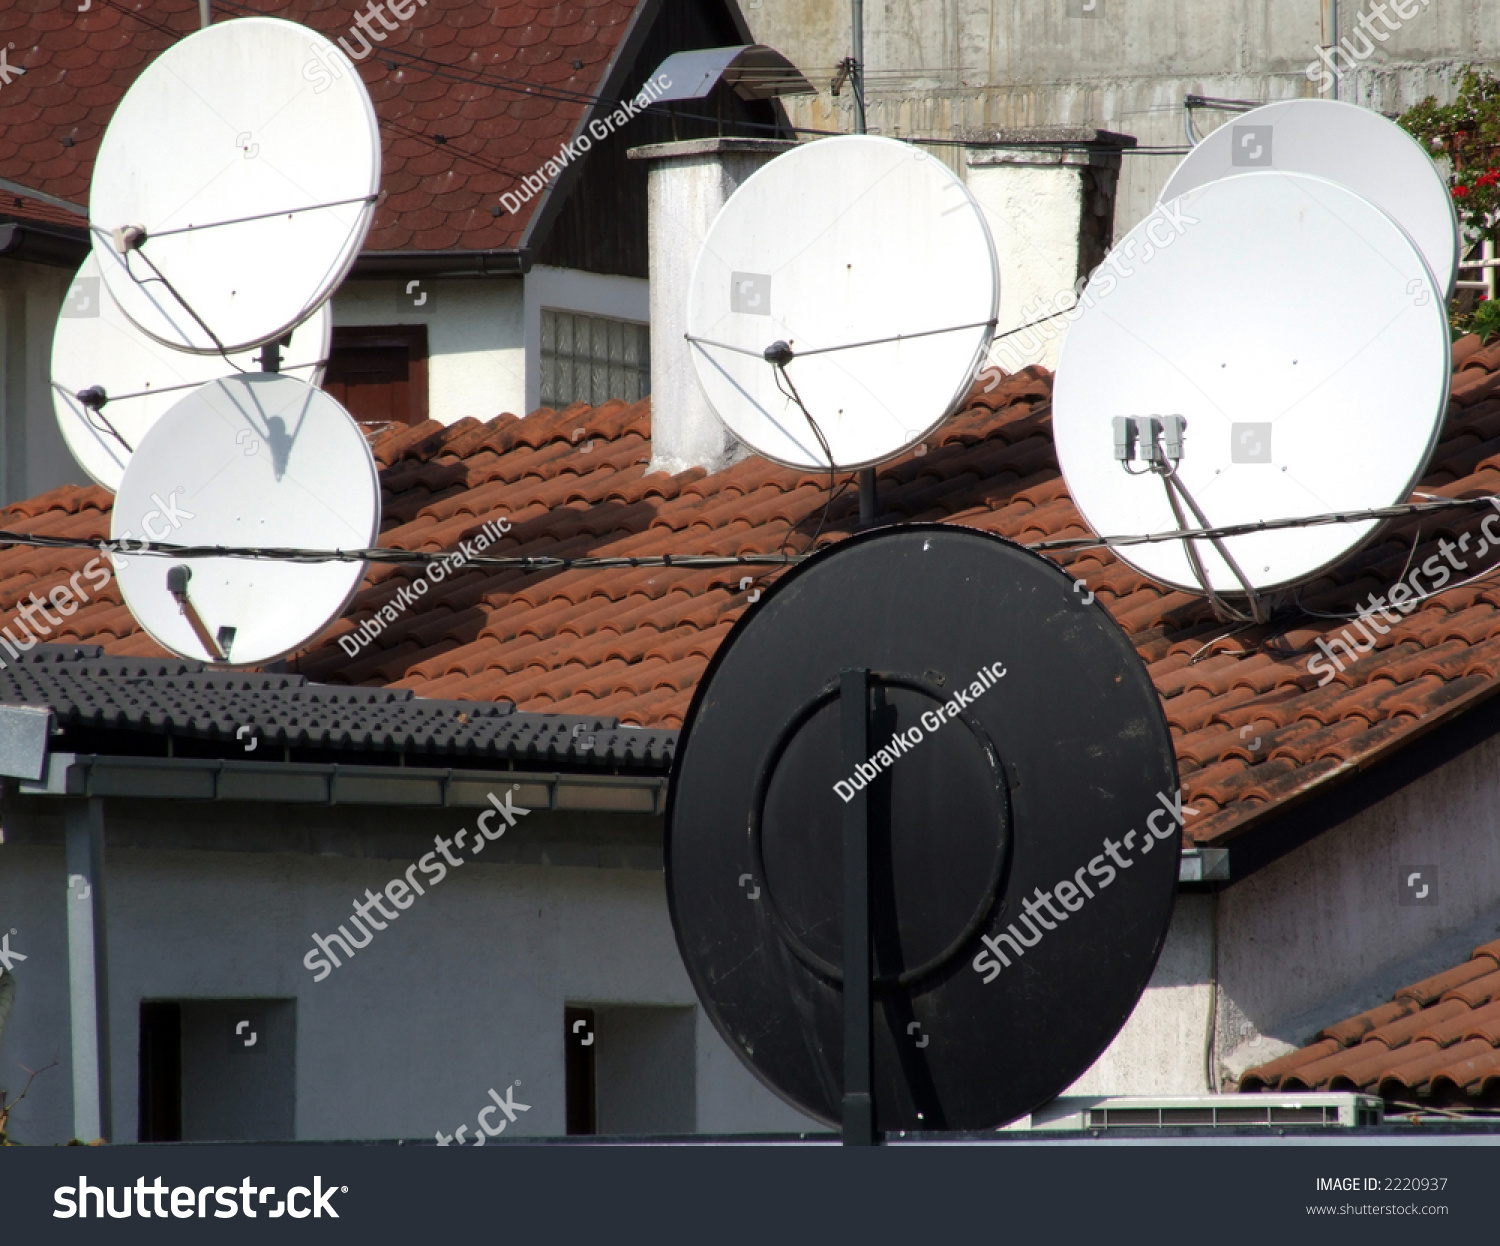 dishes for satellite tv reception stock photo 2220937 shutterstock. Black Bedroom Furniture Sets. Home Design Ideas